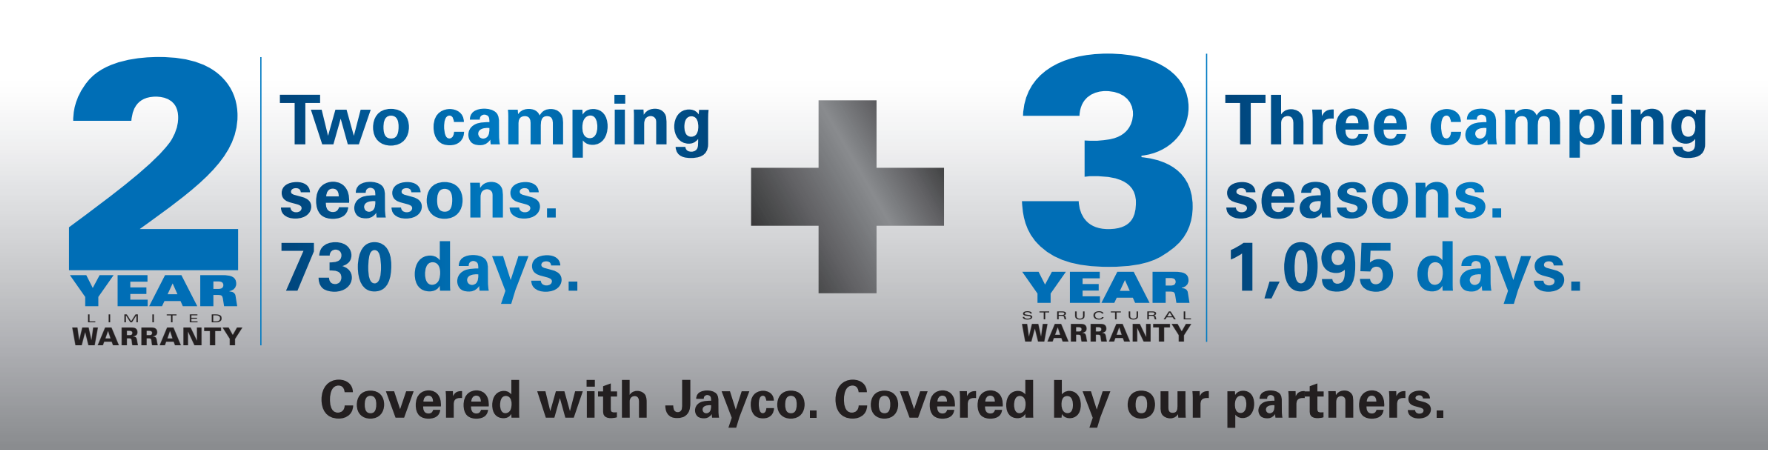 Jayco Covered areas